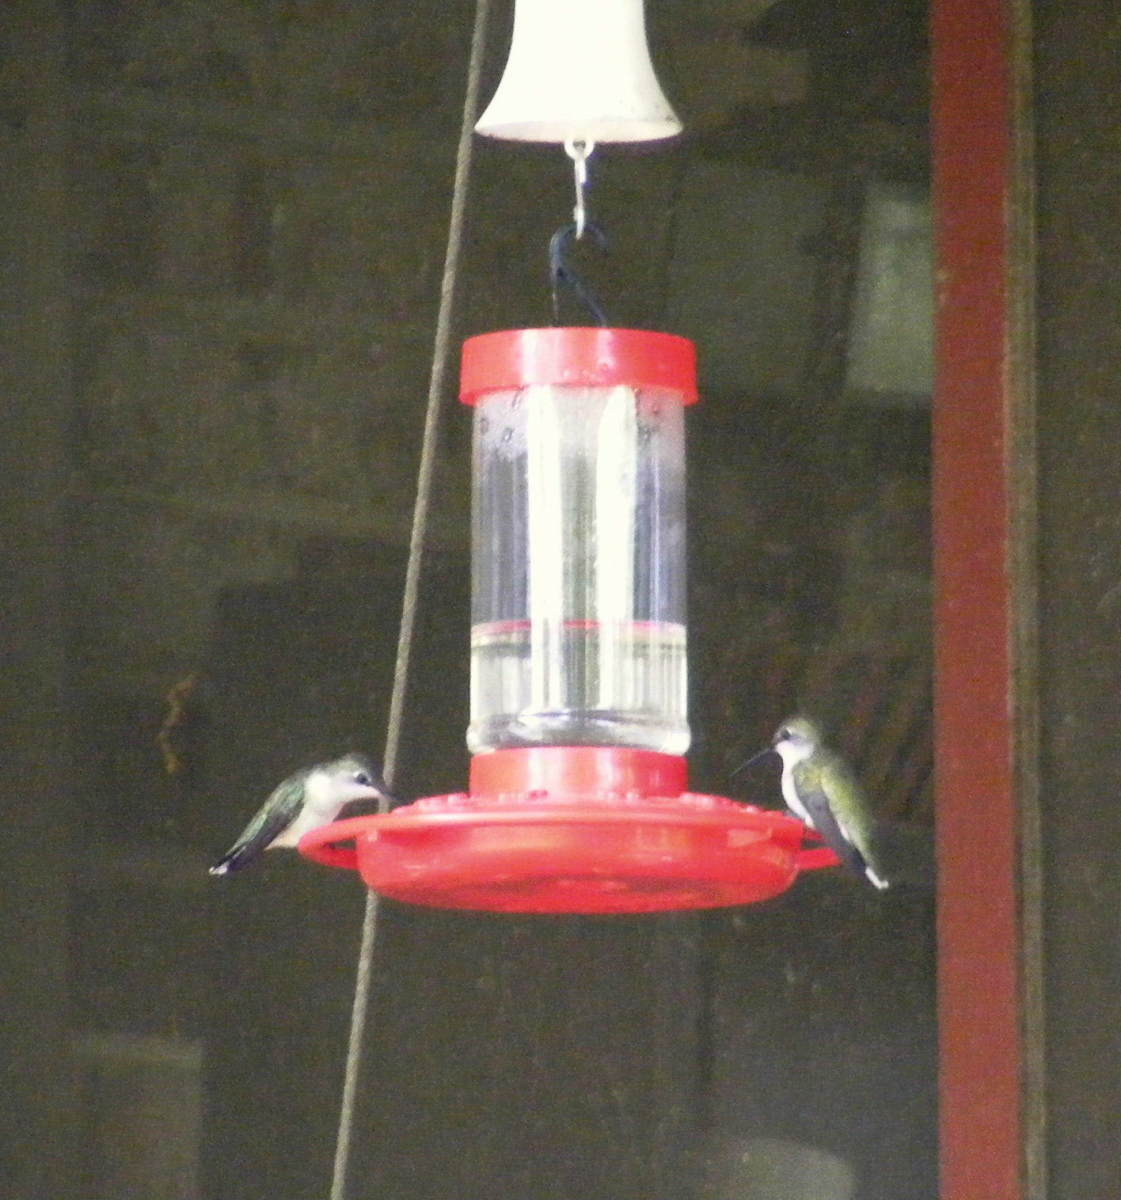 This article will break down all the information you need to know to set up a hummingbird feeder in your own garden.